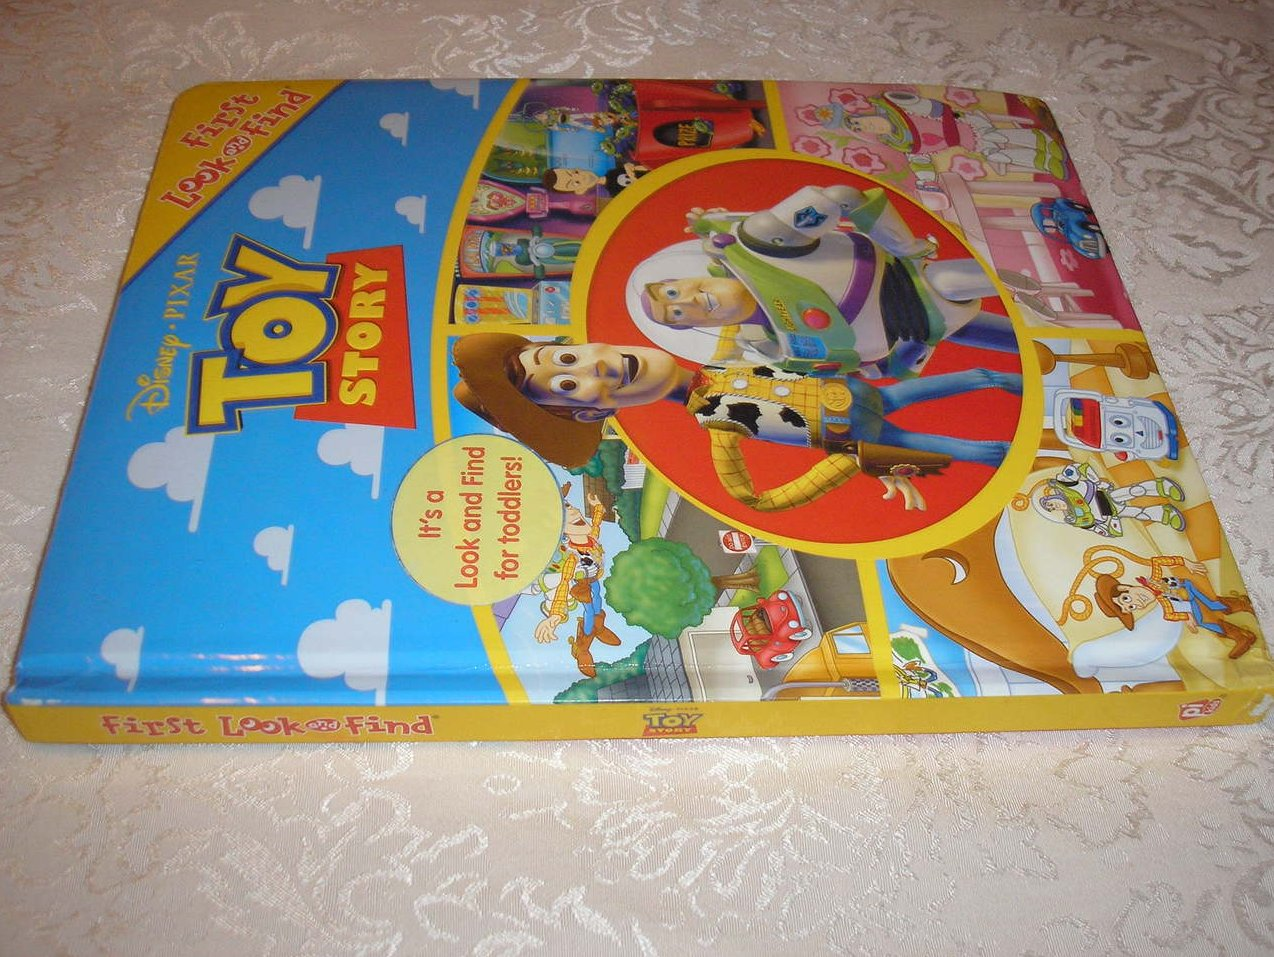 Image 5 of Disney Pixar Toy Story Look and Find padded board book